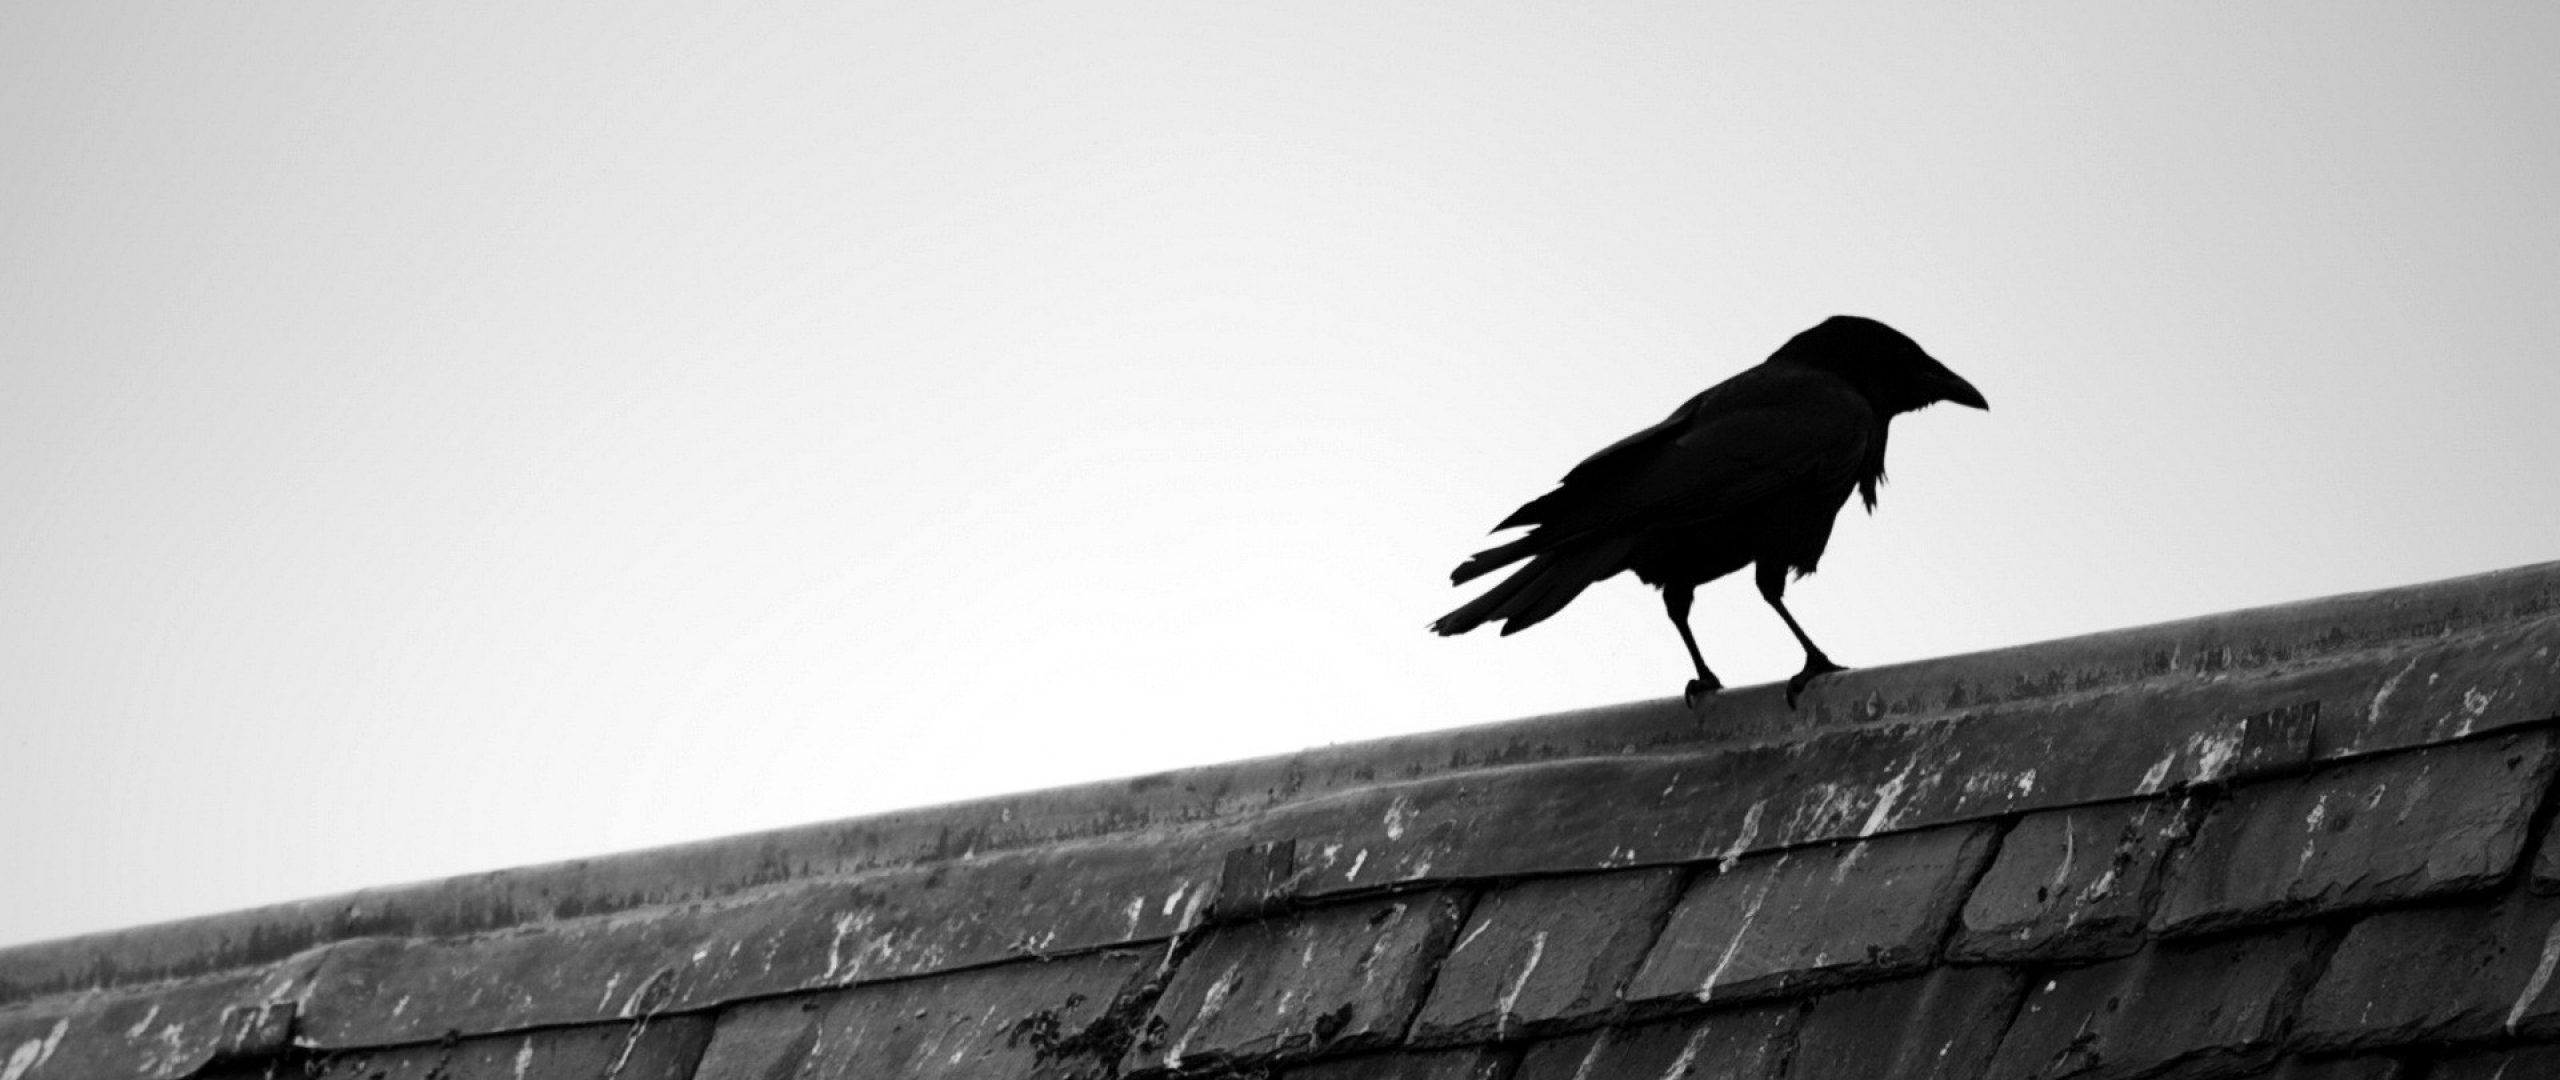 Raven Wallpapers Live Raven Wallpapers HQV53 Raven 2560x1080